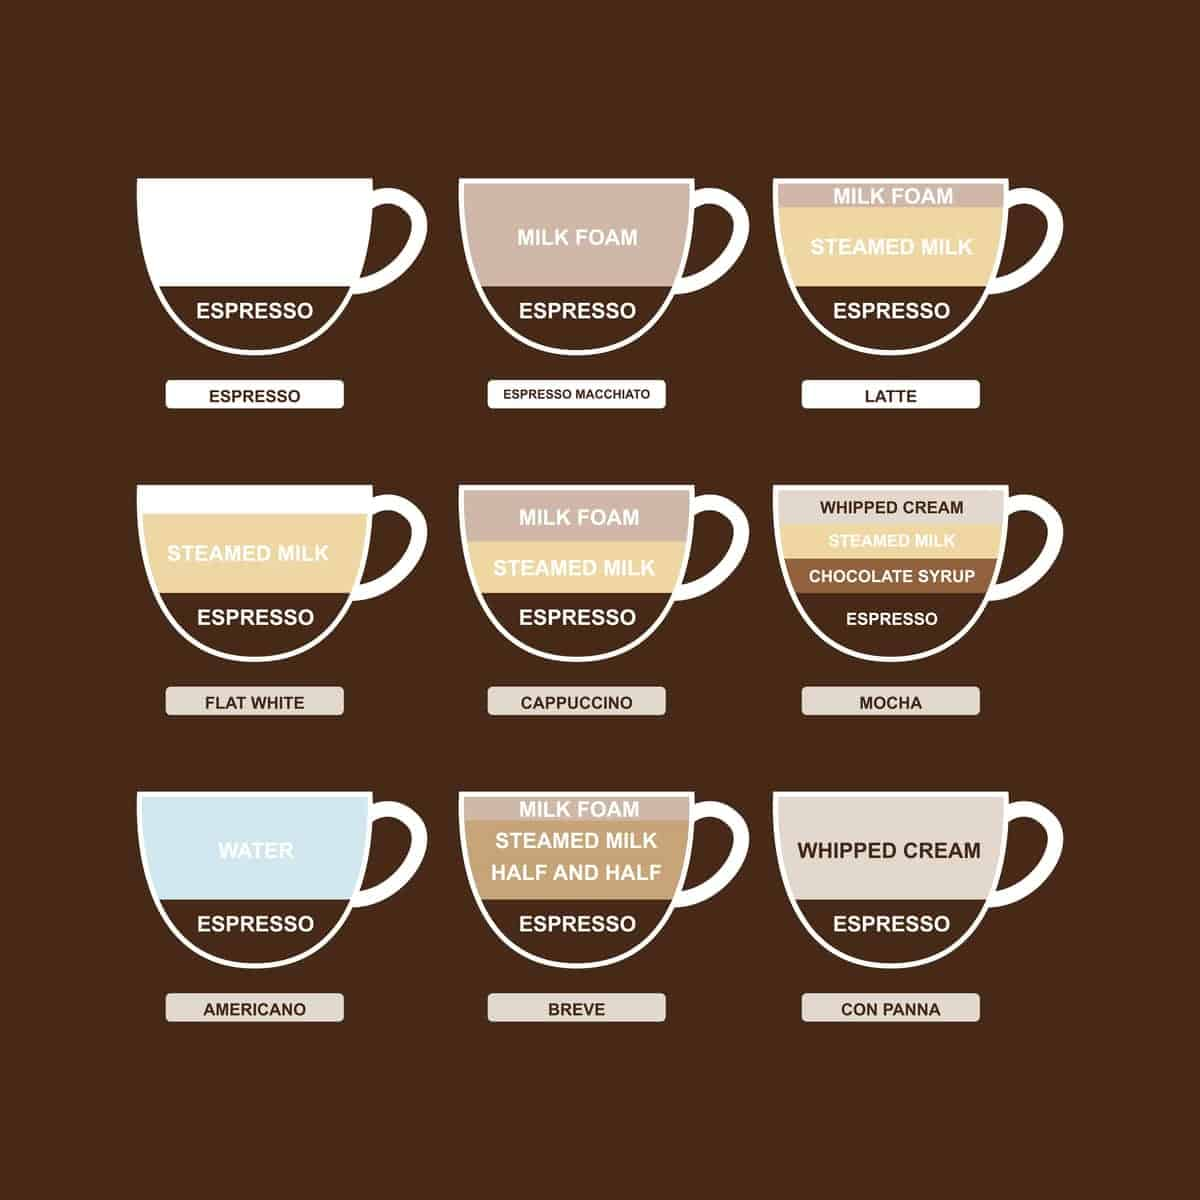 A guide to types of coffee